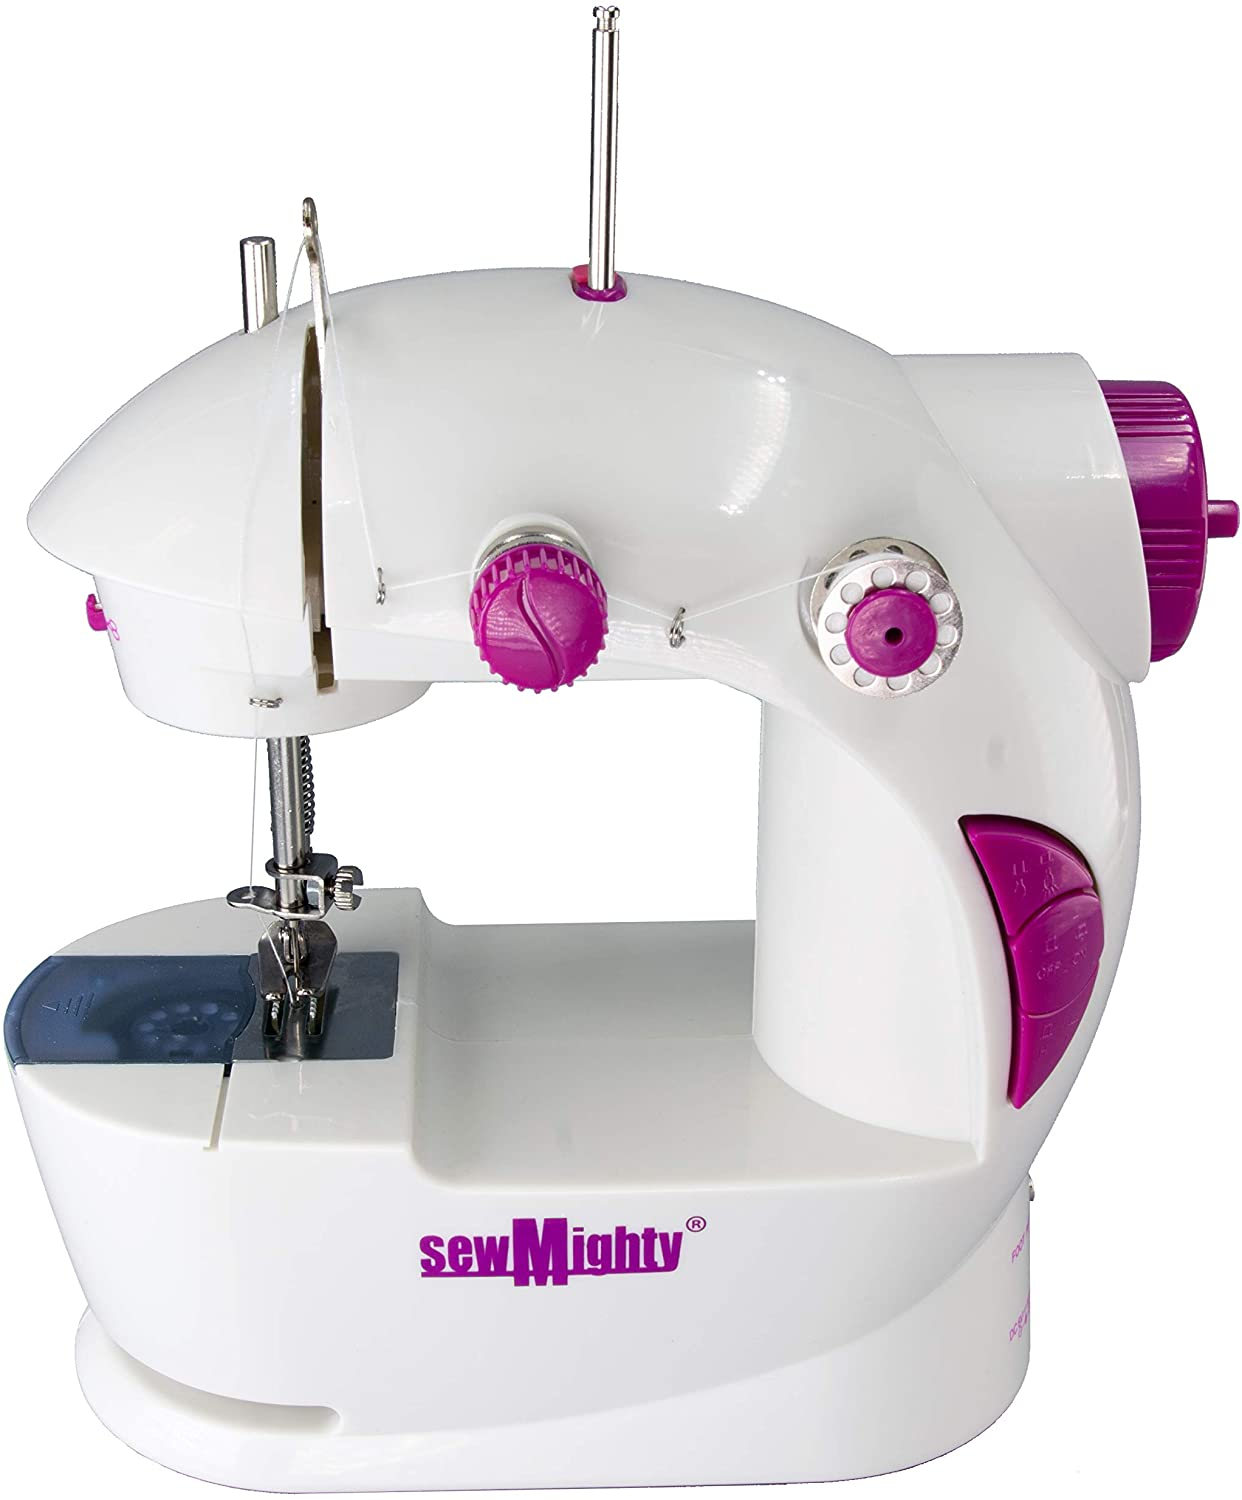 Sew Mighty